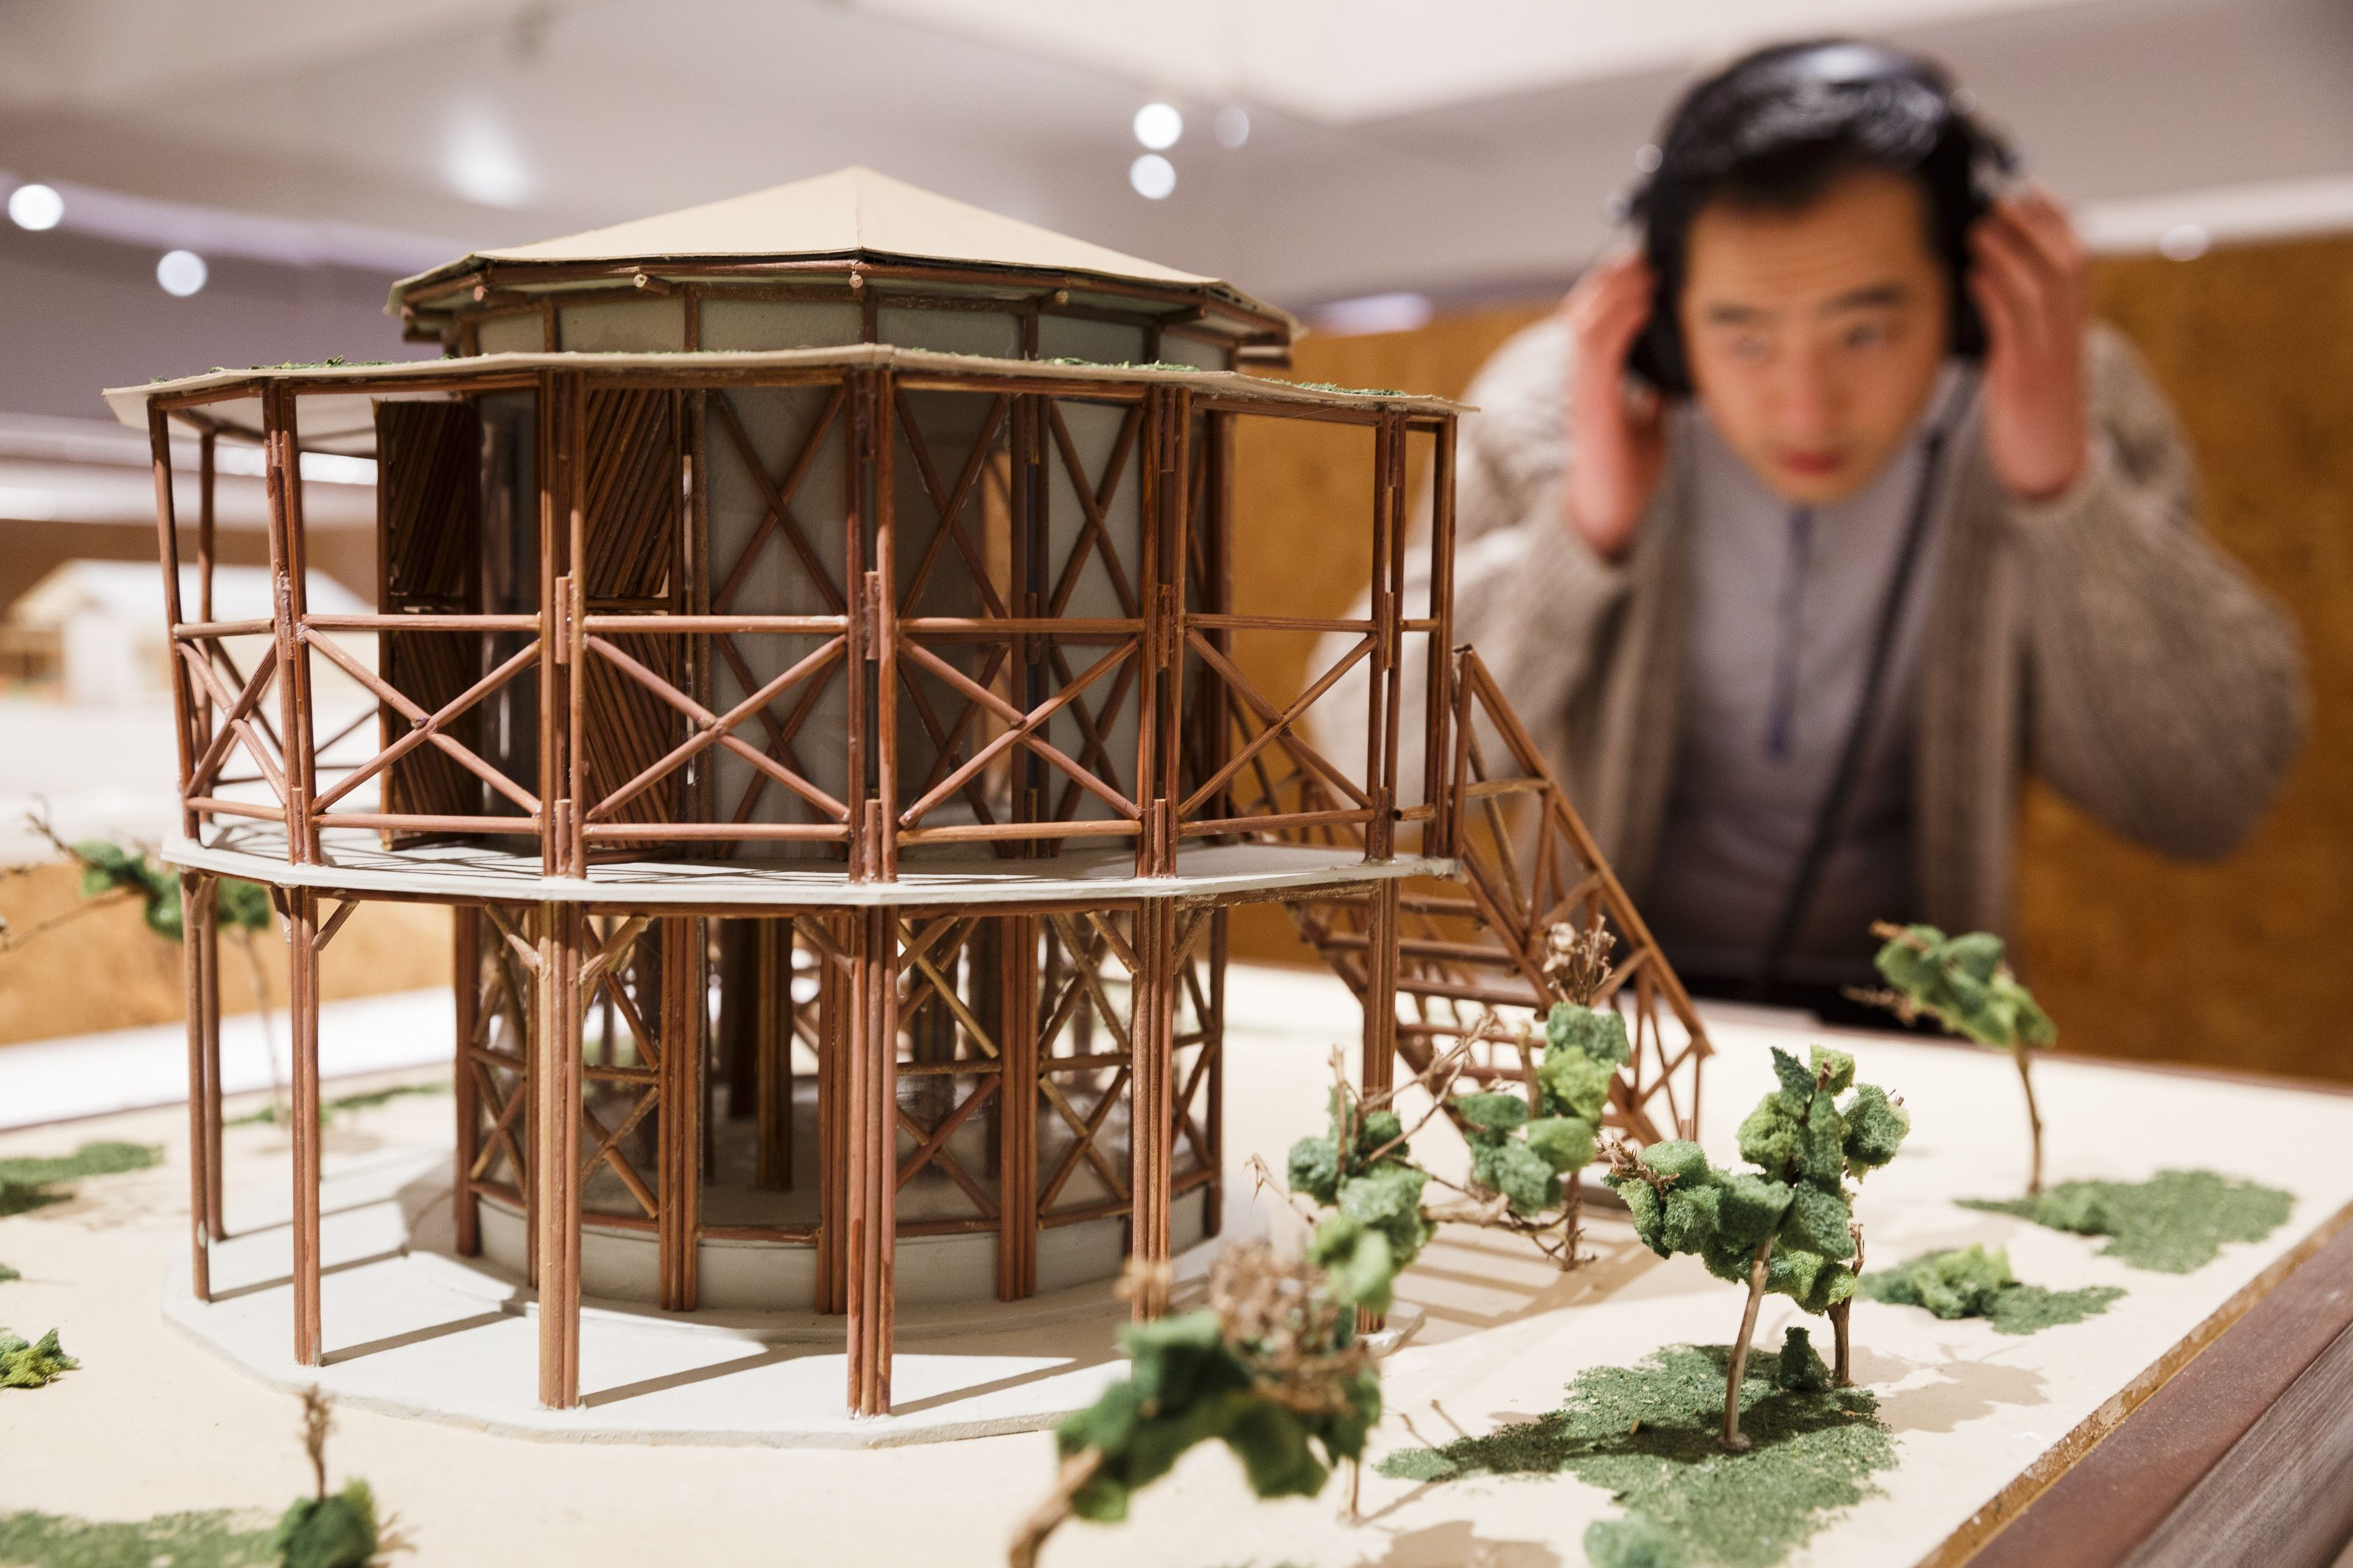 Model of round building with a young man examining it